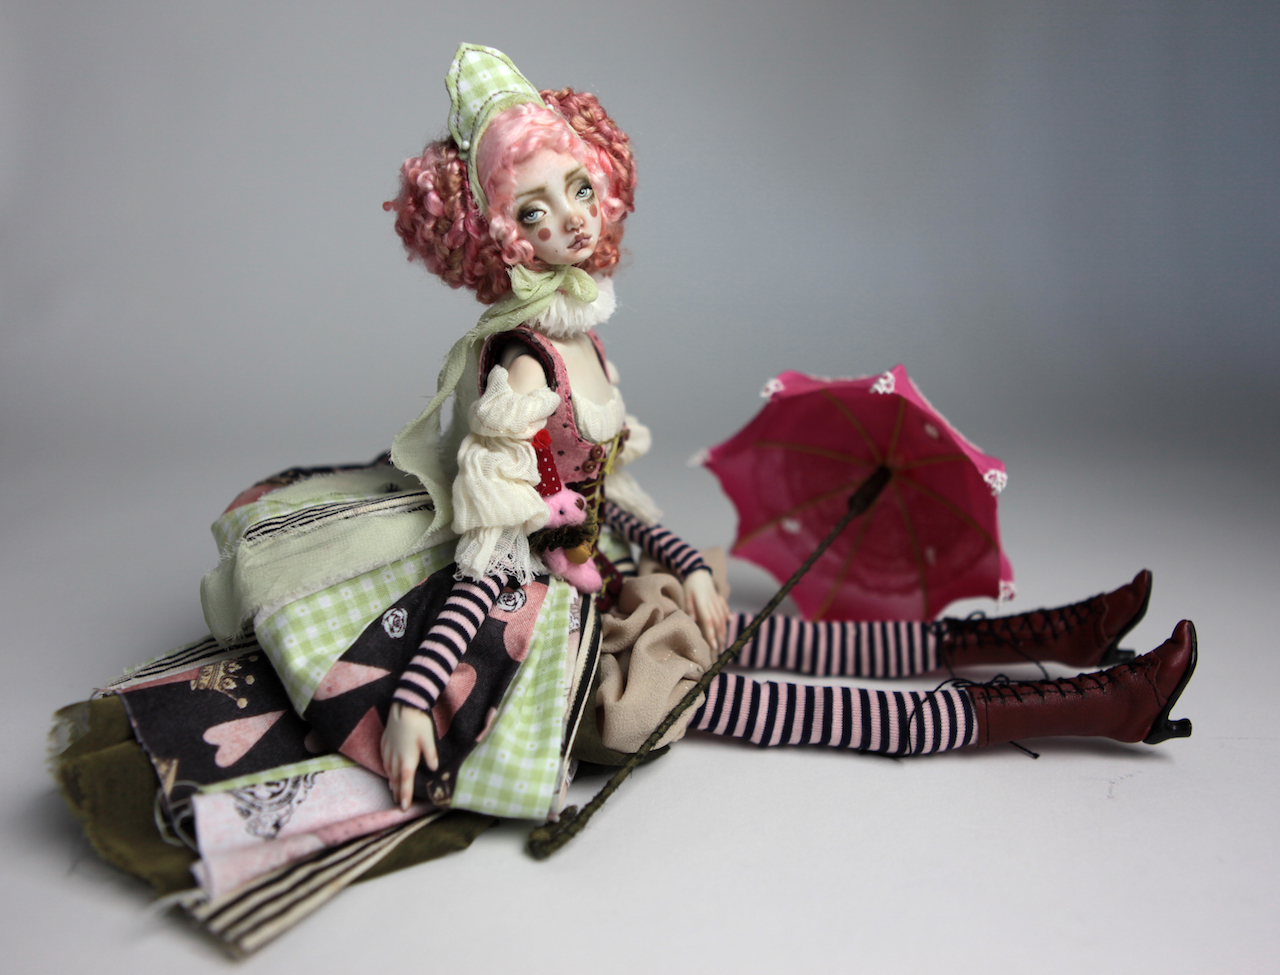 Porcelain BJD Dolls Victorian Strawberry63 1 15 Victorian Strawberry Clown Porcelain BJD Doll Rea